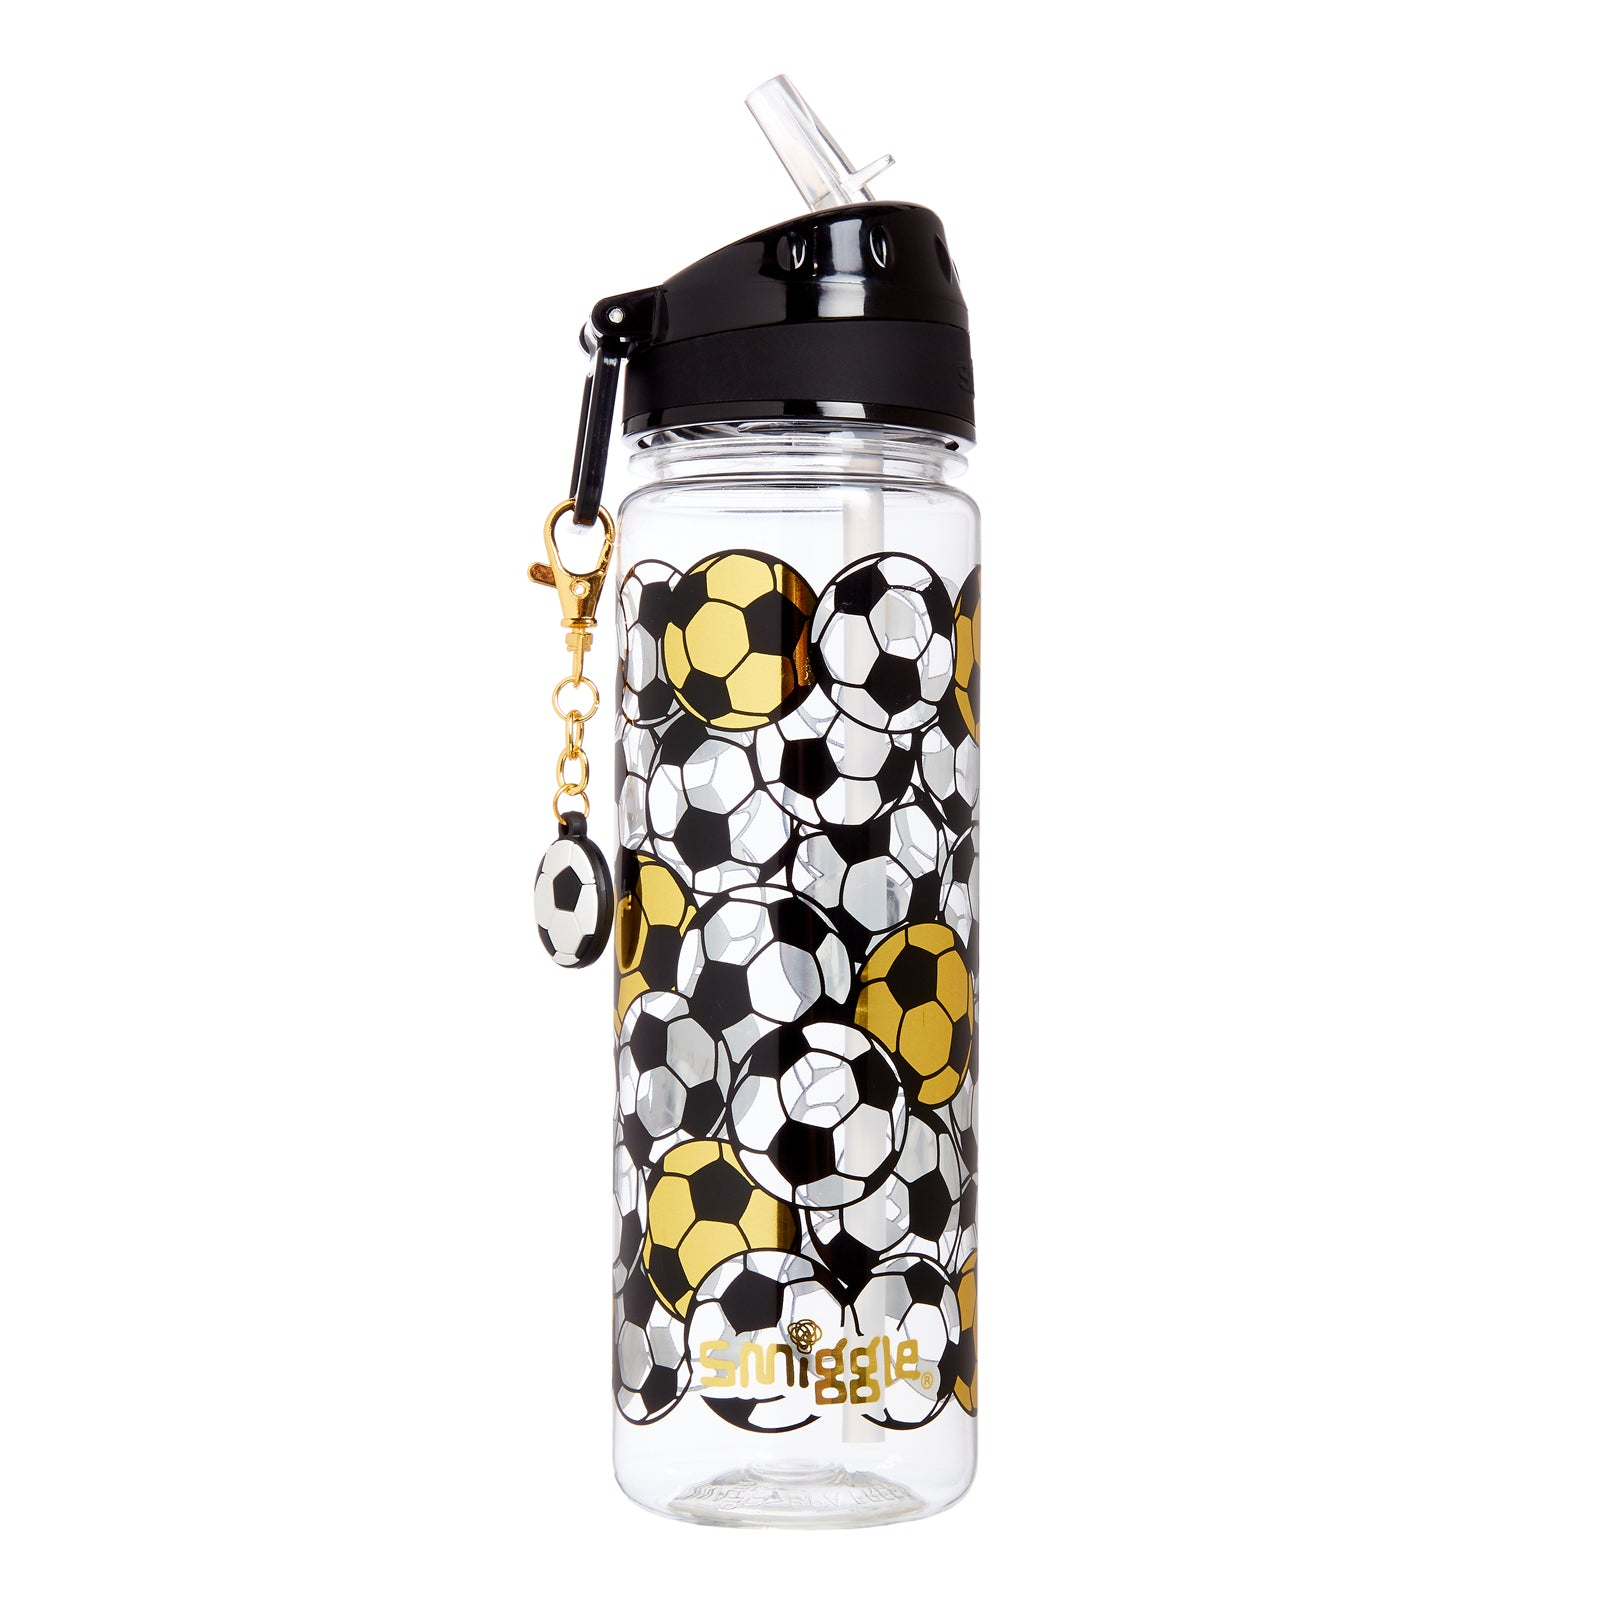 SMIGGLE - GOLD DRINK BOTTLE WITH CHARM